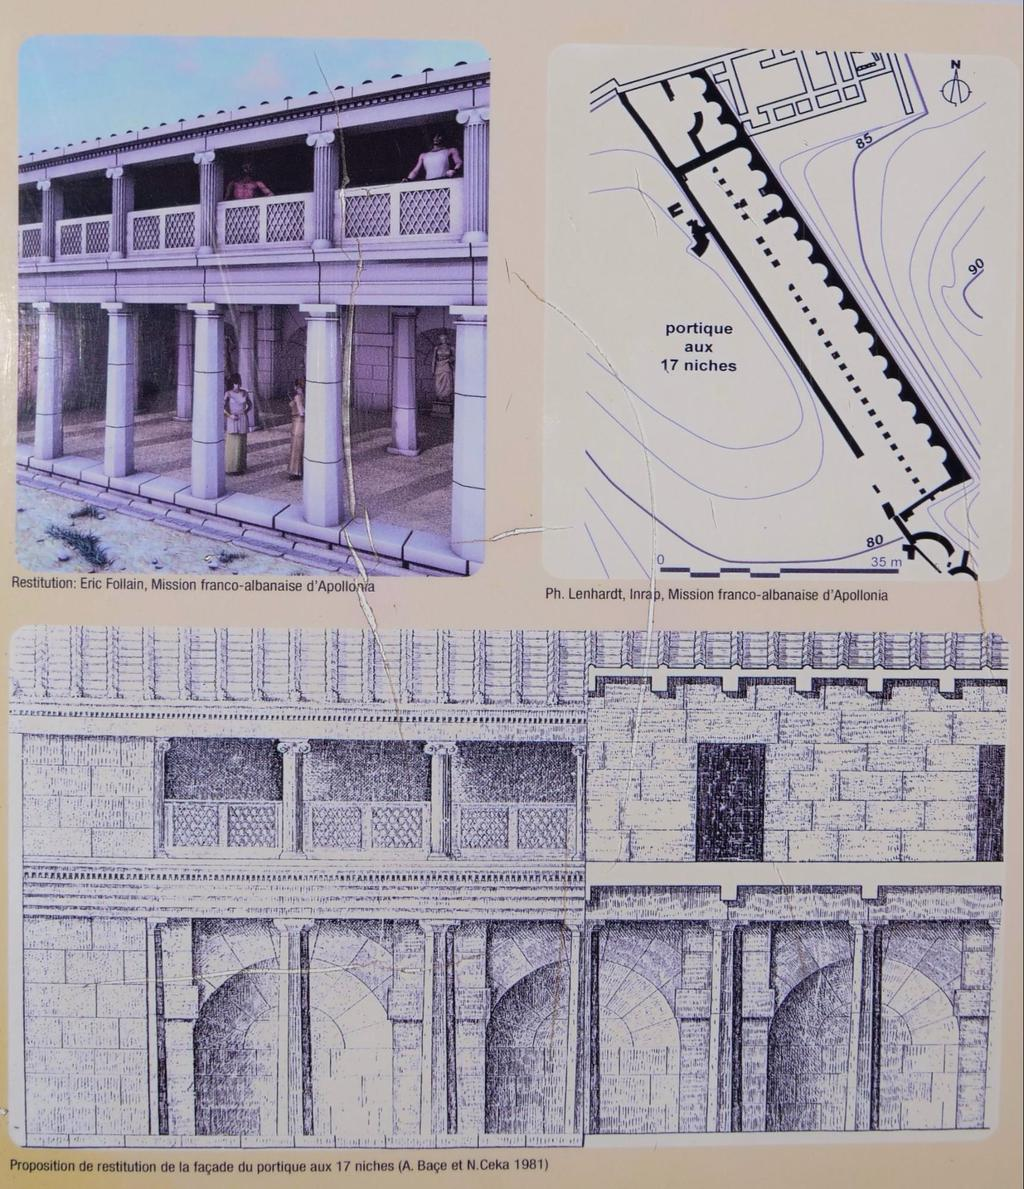 Drawing of what the Portico area must have looked like from the exhibit in Apollonia